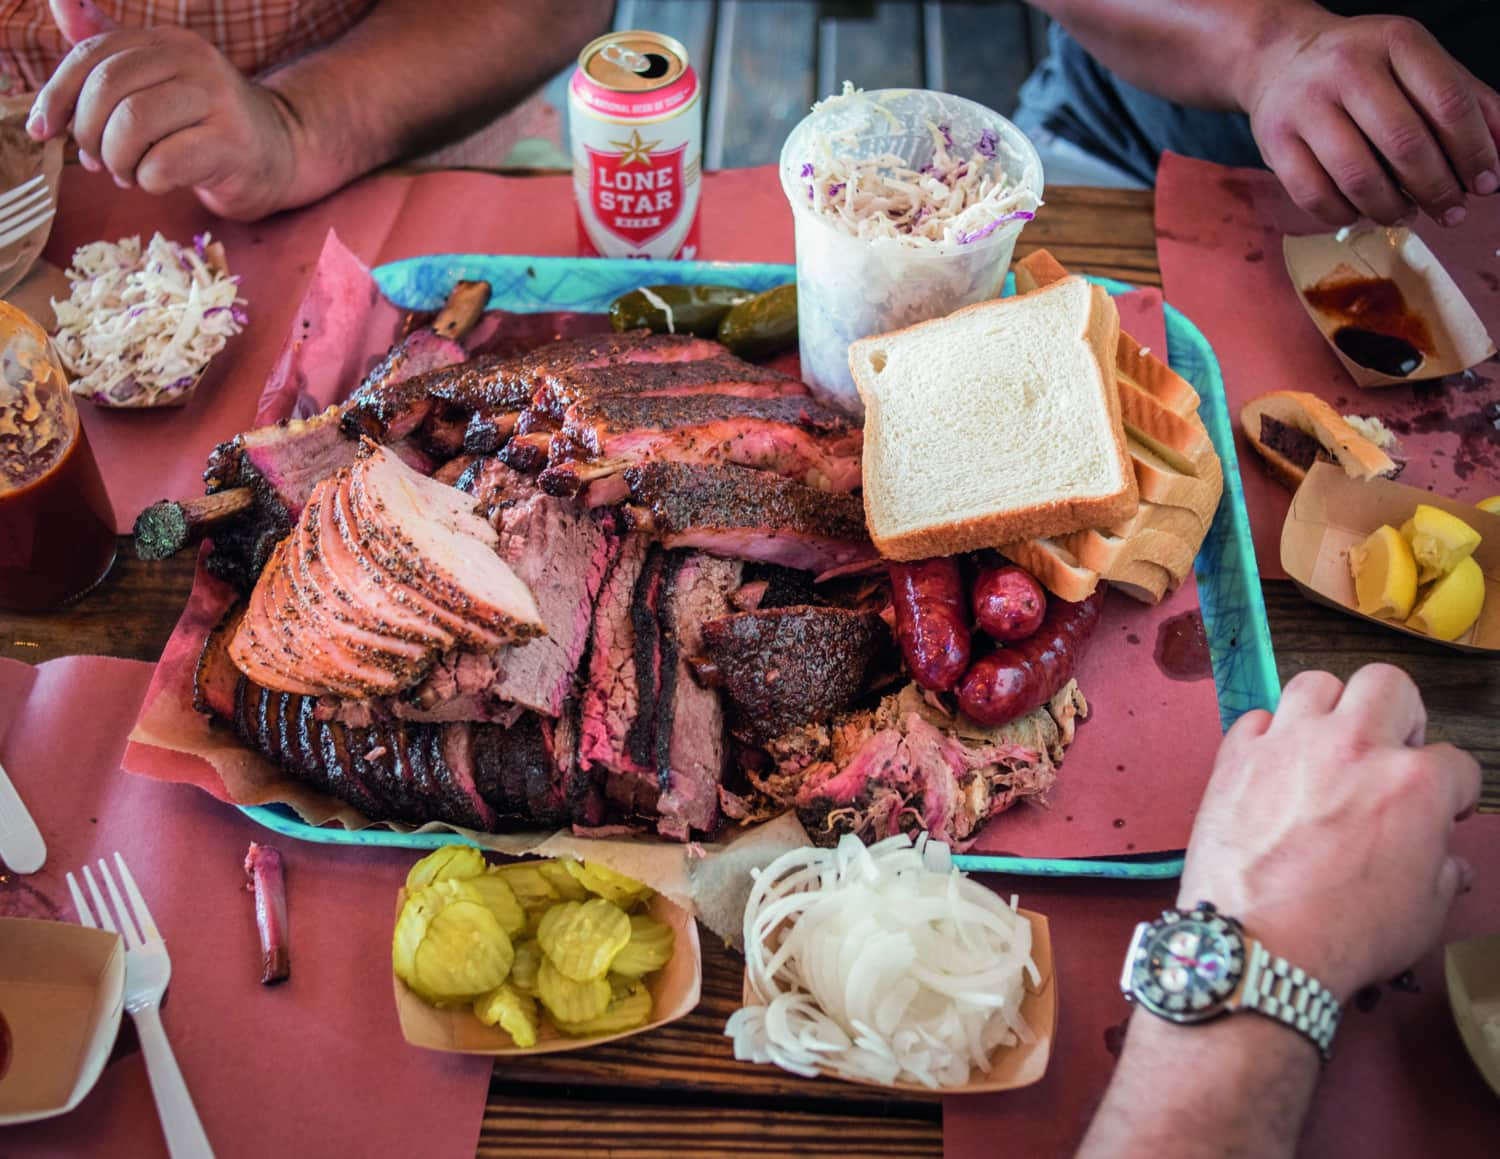 Volle Grillplatte in einem Restaurant in Texas